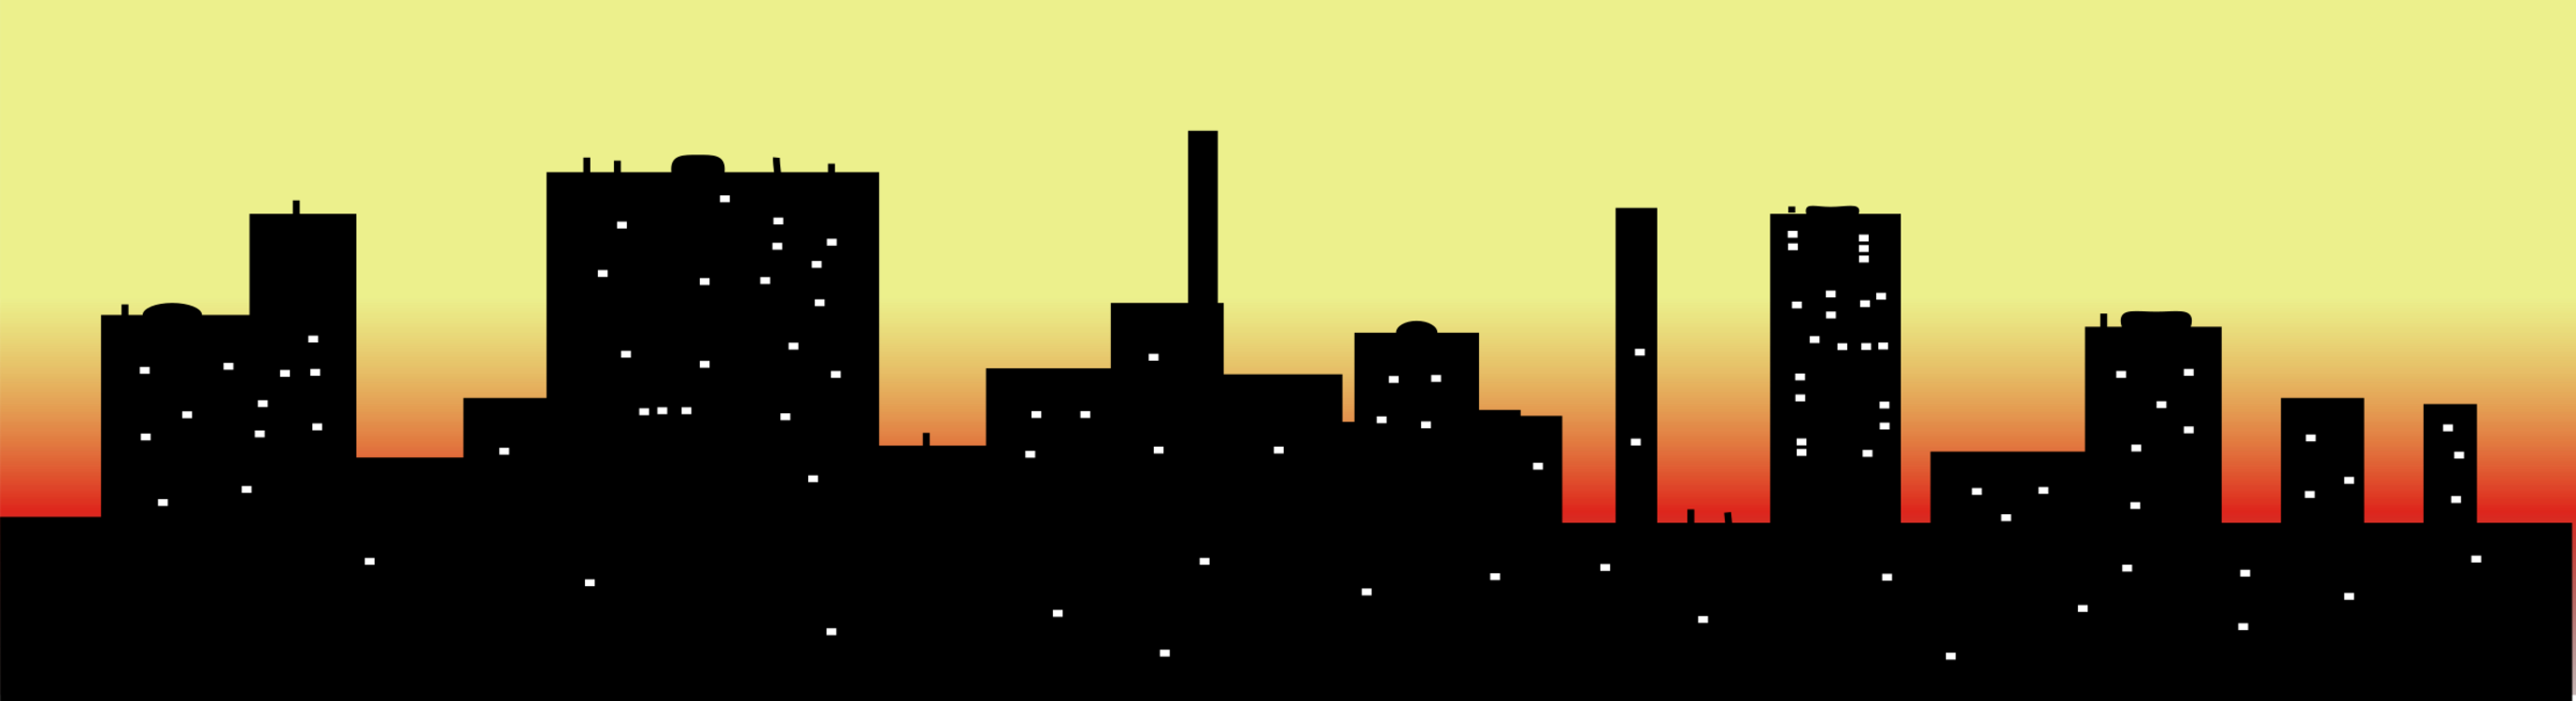 Seattle vector city scape. Skyline cityscape drawing free